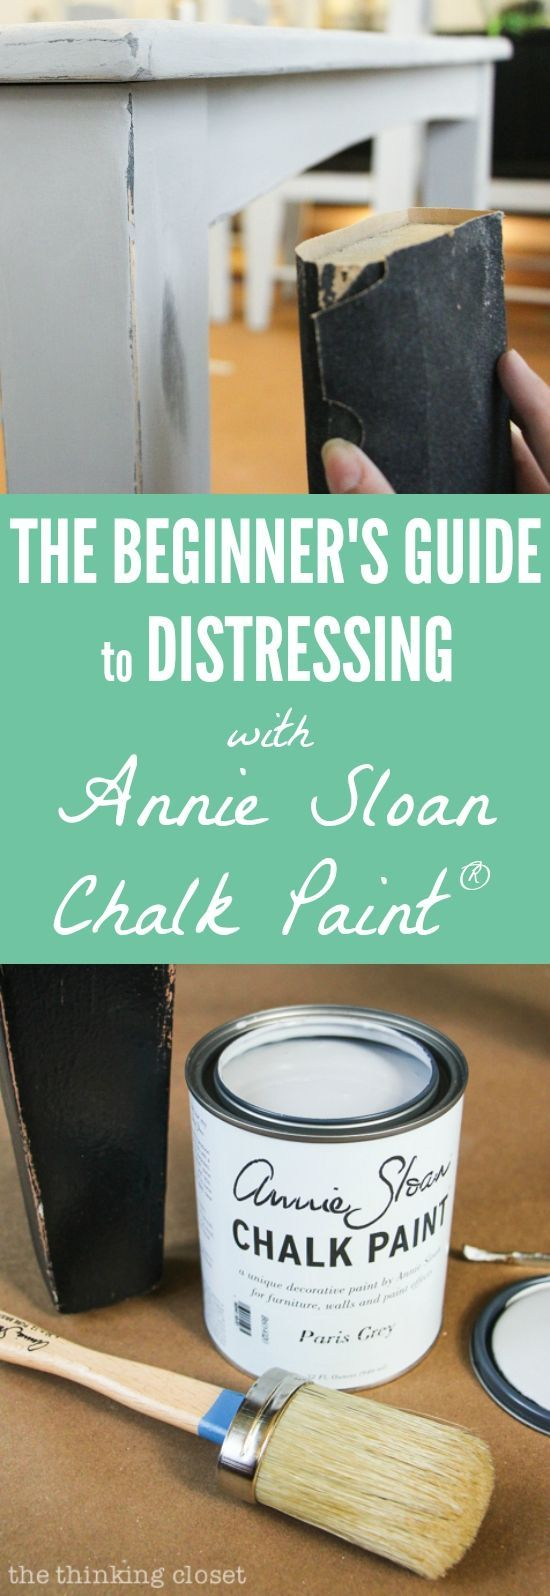 Painting furniture ideas distressed - The Beginner S Guide To Distressing With Annie Sloan It Turns Out That Distressing With Chalk